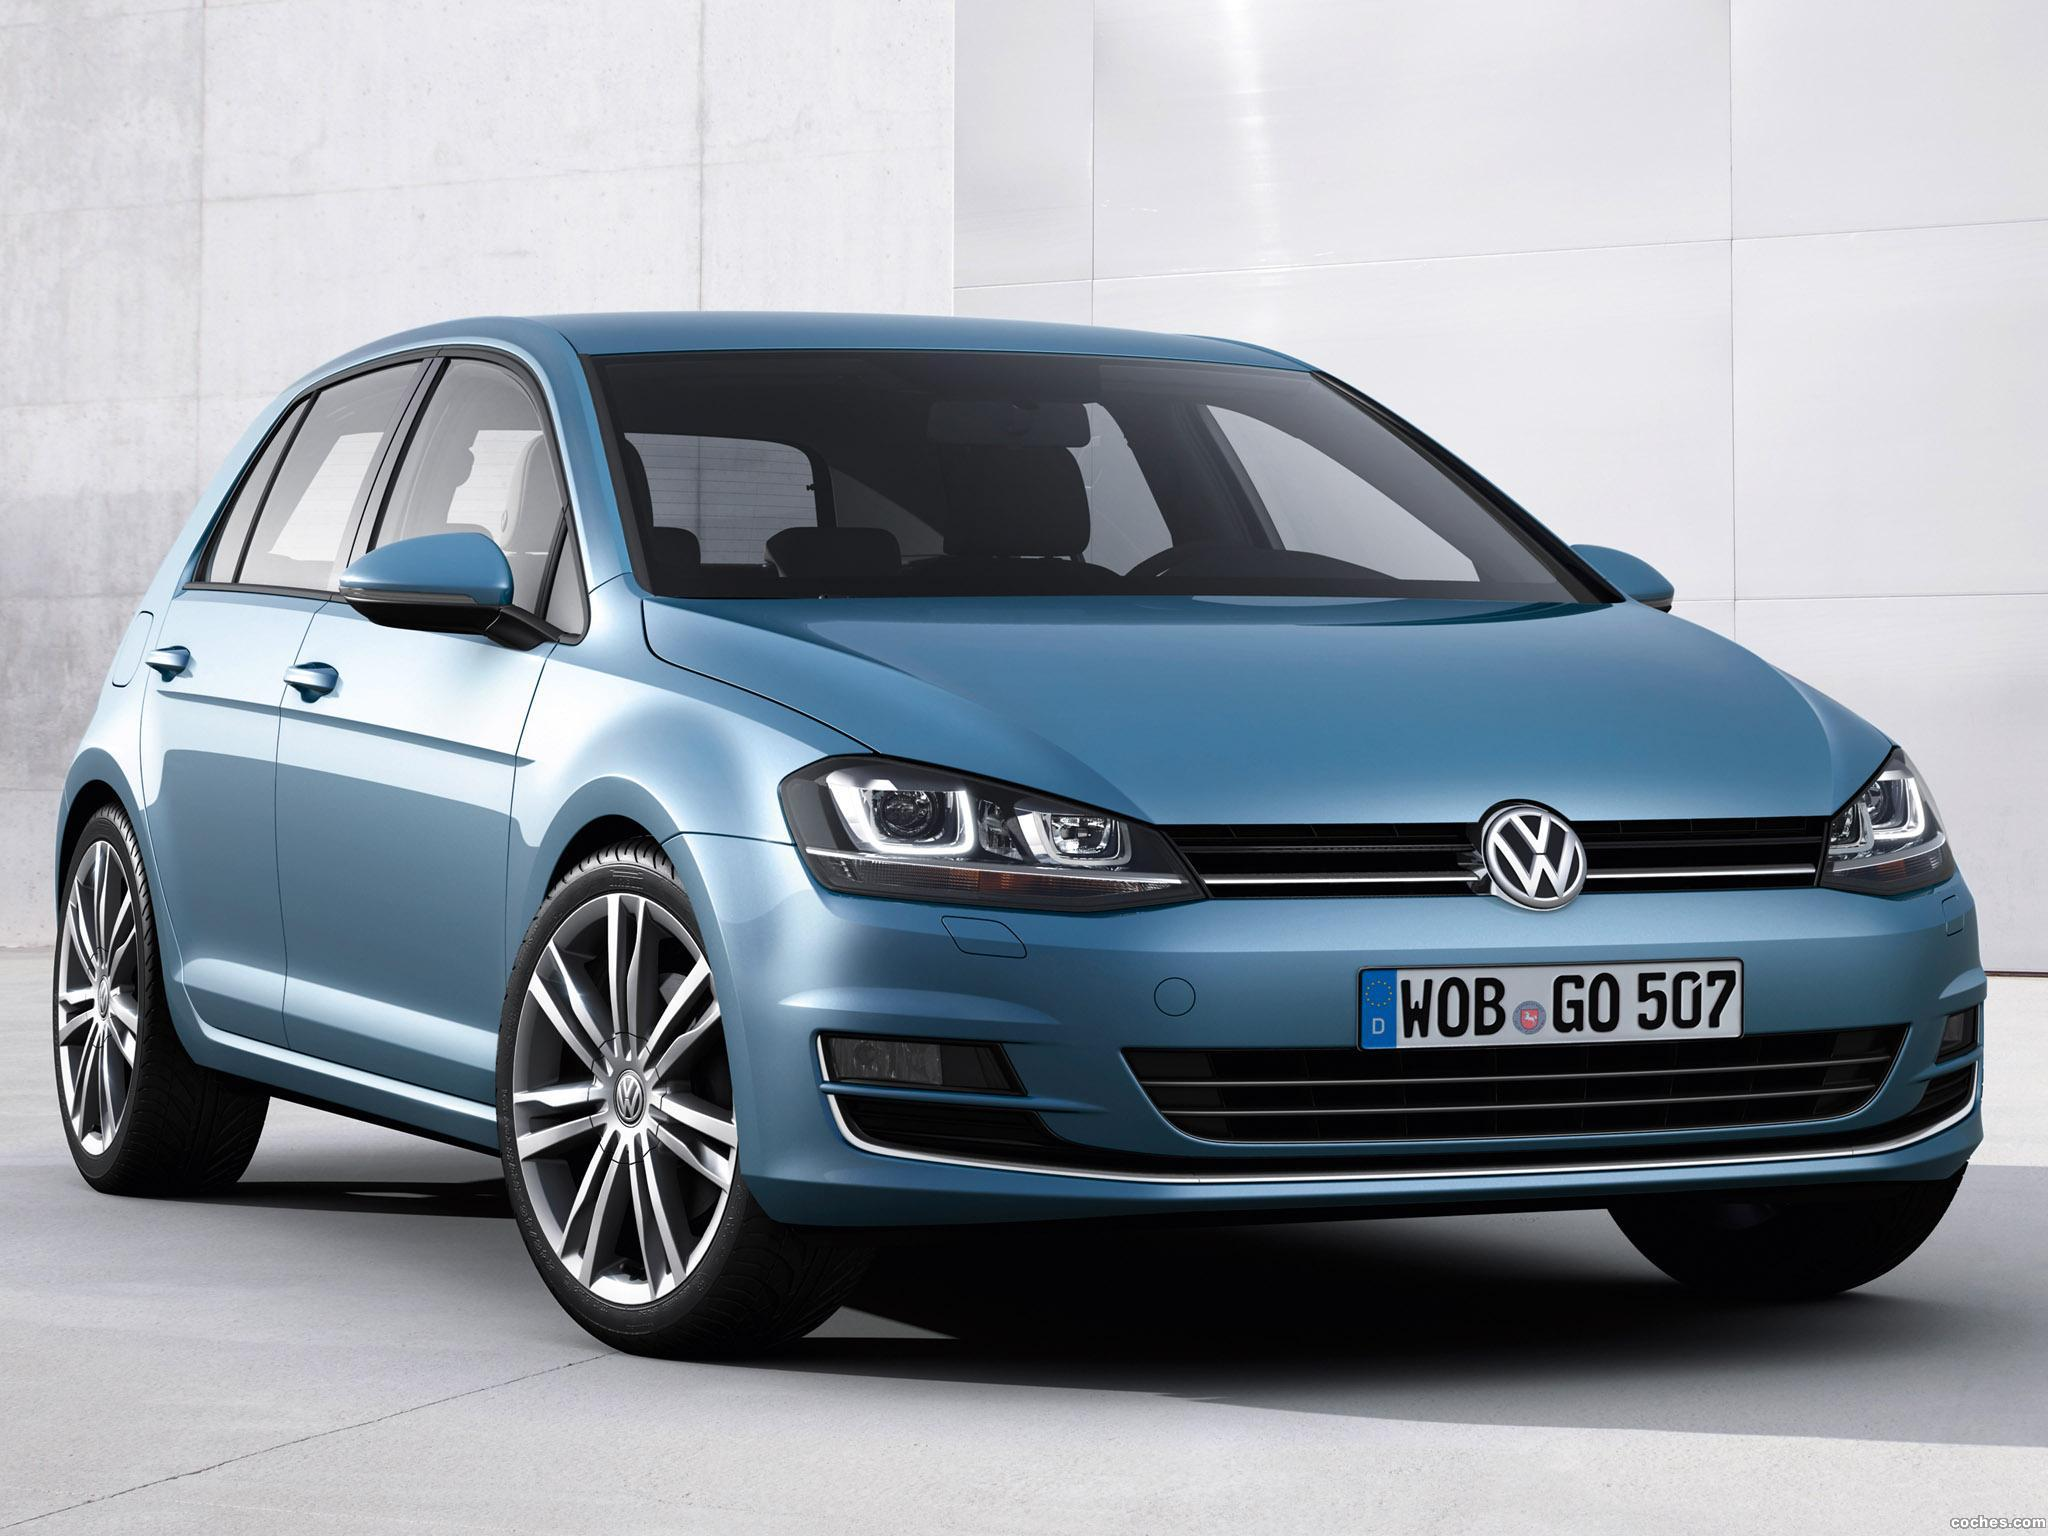 fotos de volkswagen golf 7 5 puertas tsi bluemotion 2013. Black Bedroom Furniture Sets. Home Design Ideas